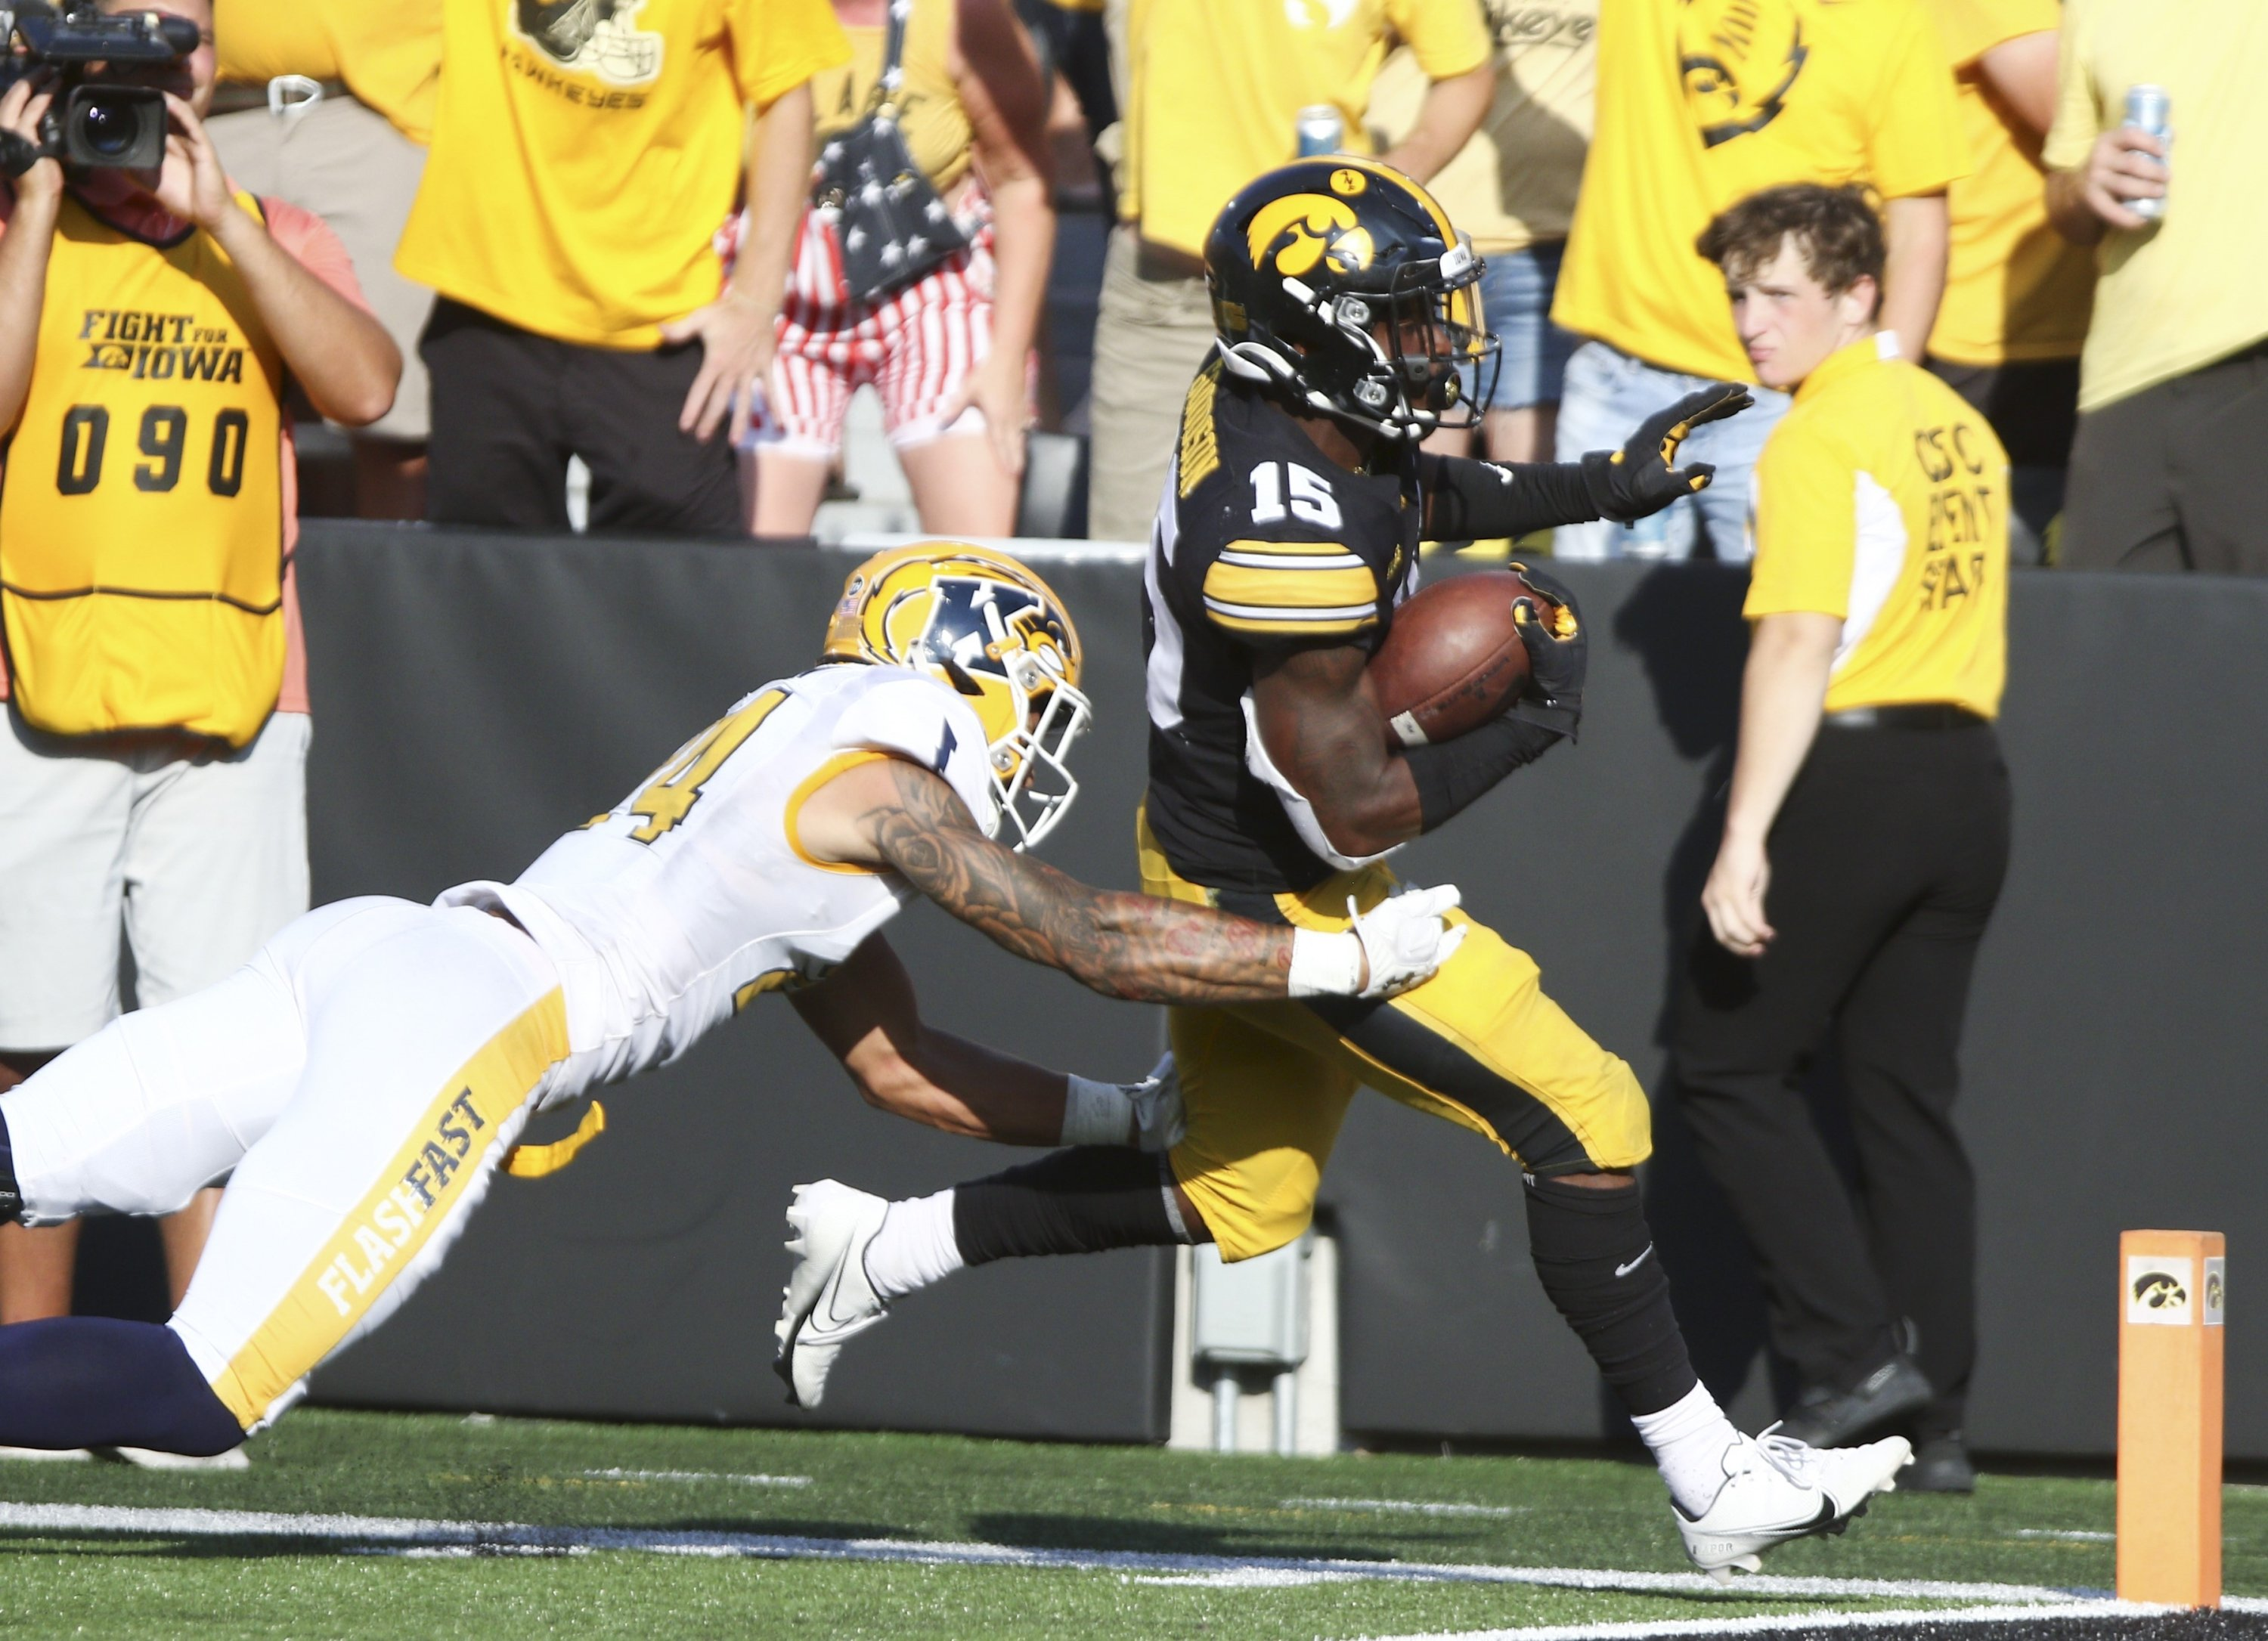 Running back Tyler Goodson (15) of the Iowa Hawkeyes runs in a touchdown during the second half in front of safety Nico Bolden (24) of the Kent State Golden Flashes at Kinnick Stadium, Iowa City, Iowa, U.S., Sept. 18, 2021. (AFP Photo)